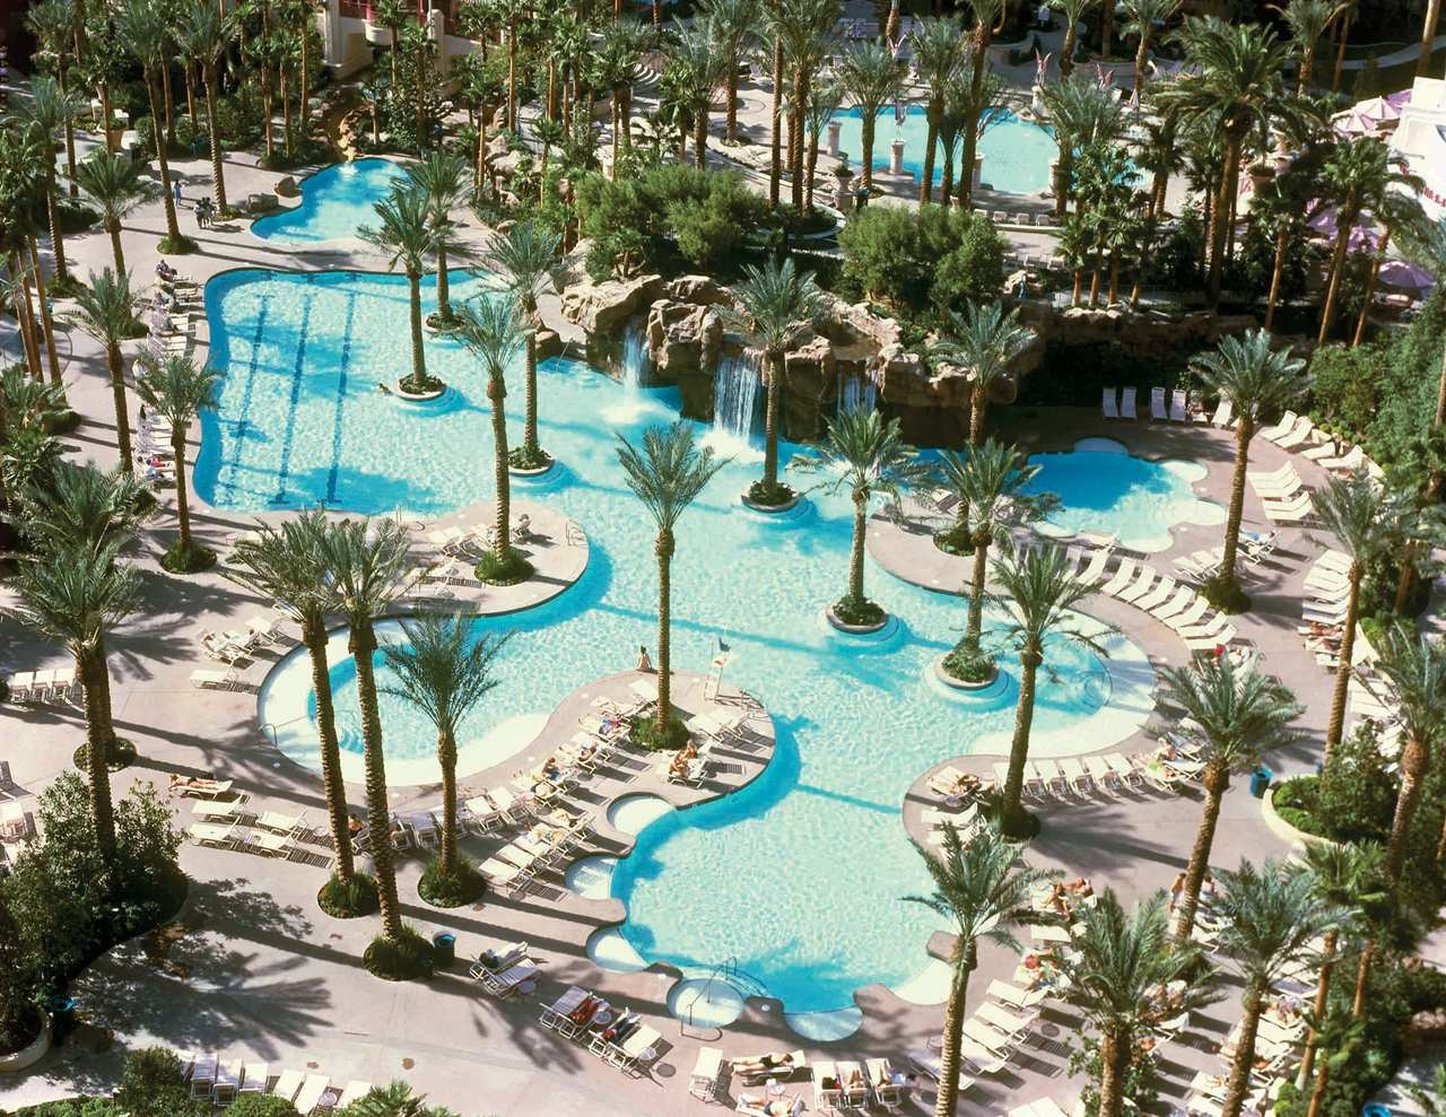 las vegas strip s map with Default on The Beautiful And Gorgeous Cosmopolitan In Las Vegas together with Zion National Park furthermore Delaware Museum furthermore 2015 Las Vegas Pool Party Calendar Best Las Vegas Pool Parties besides Monte carlo.